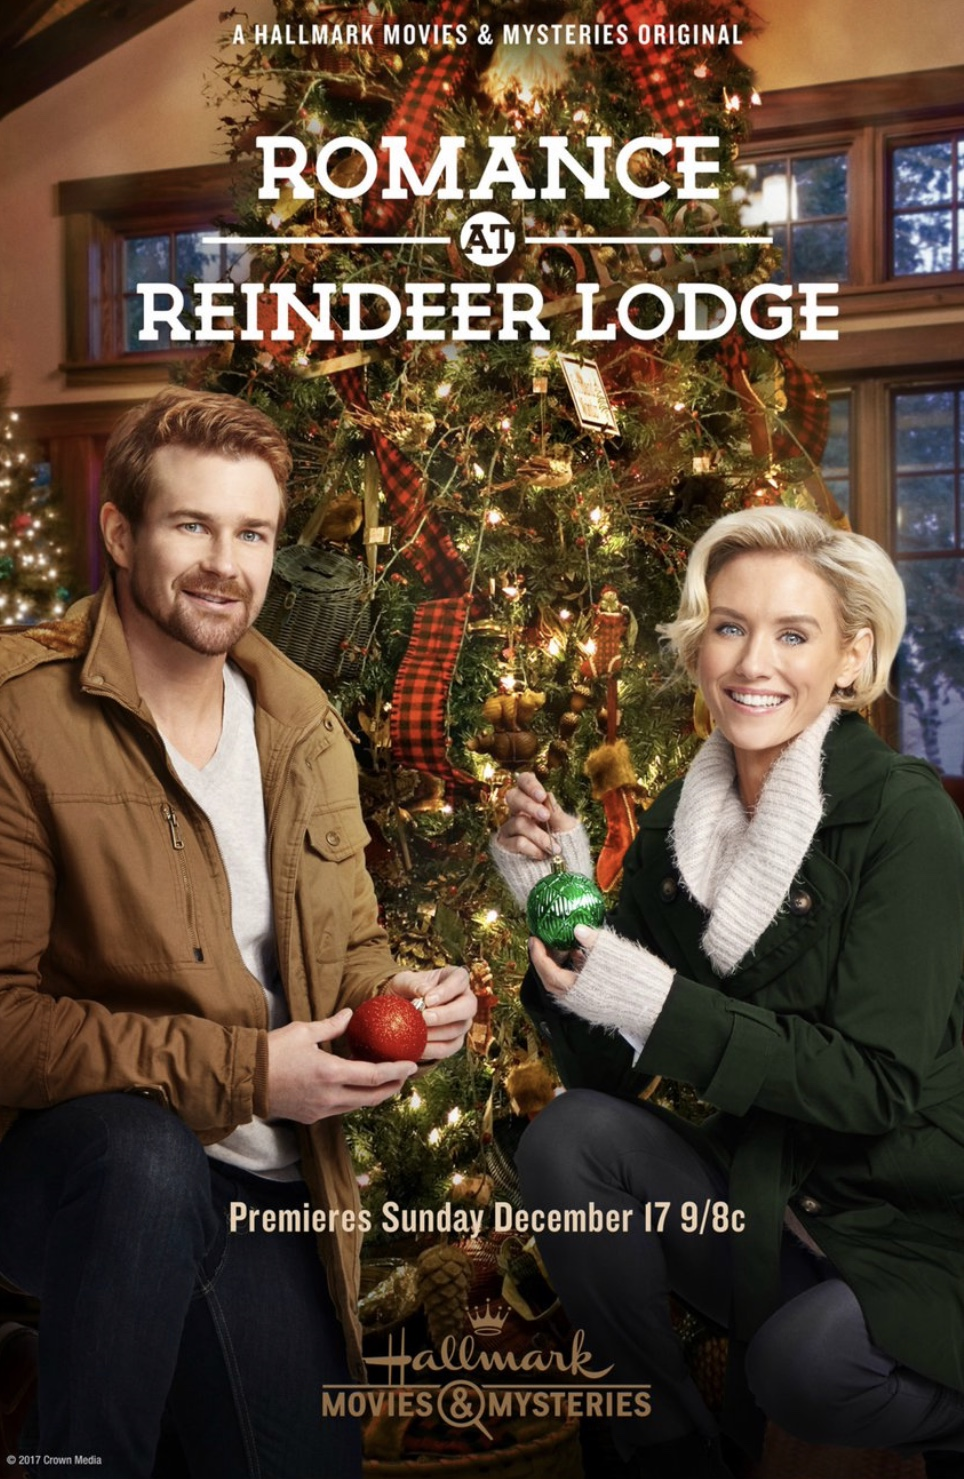 Romance at Reindeer Lodge (2017)